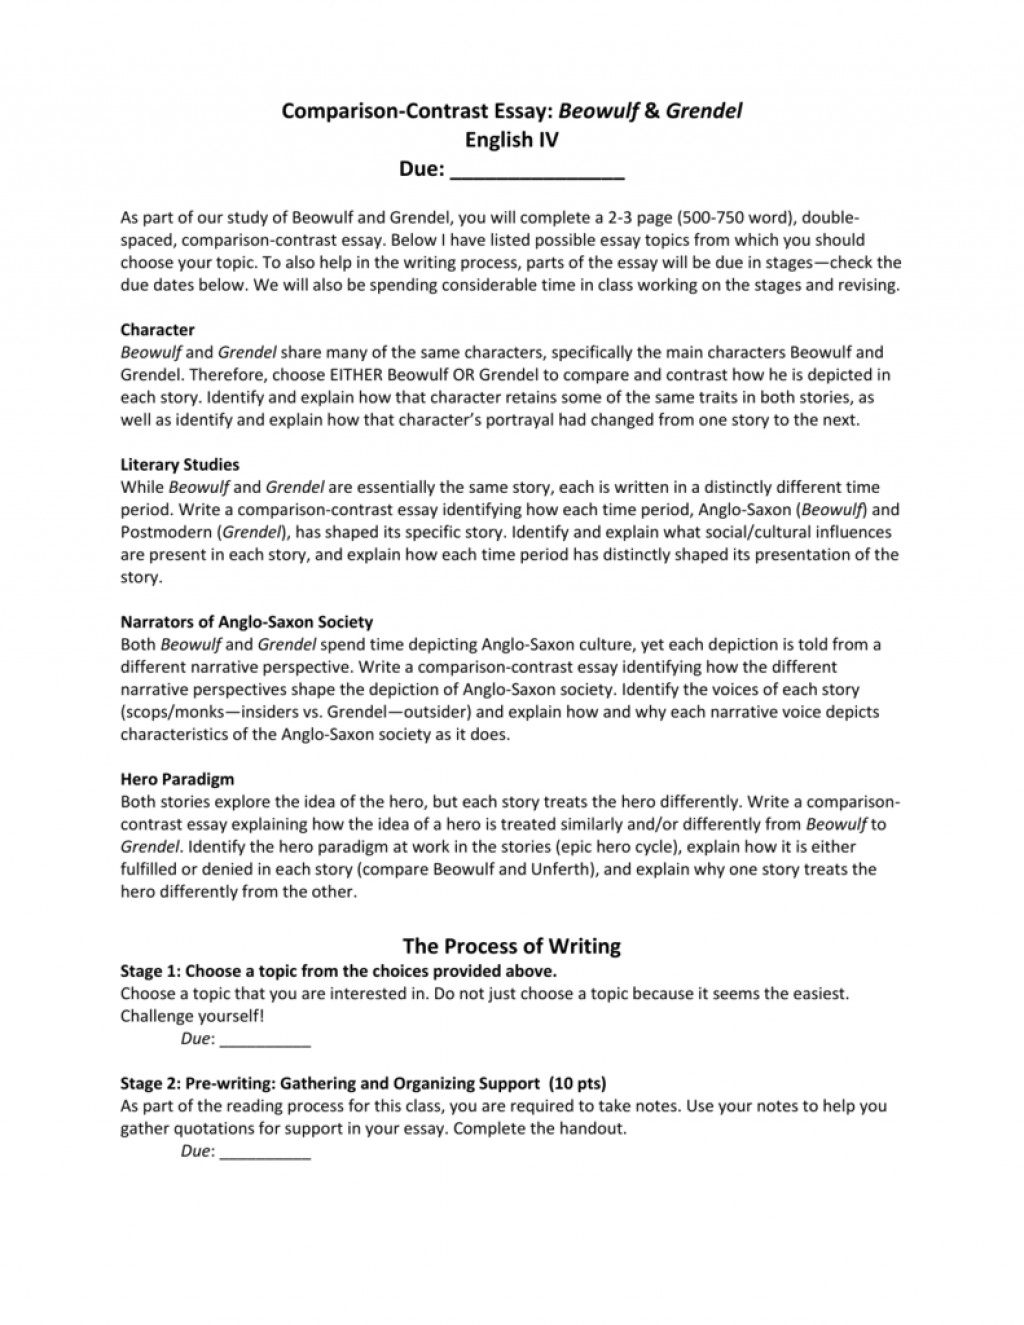 014 Essay Example 008061732 1 Comparison Beautiful Contrast Compare Format College Graphic Organizer Pdf Examples Large